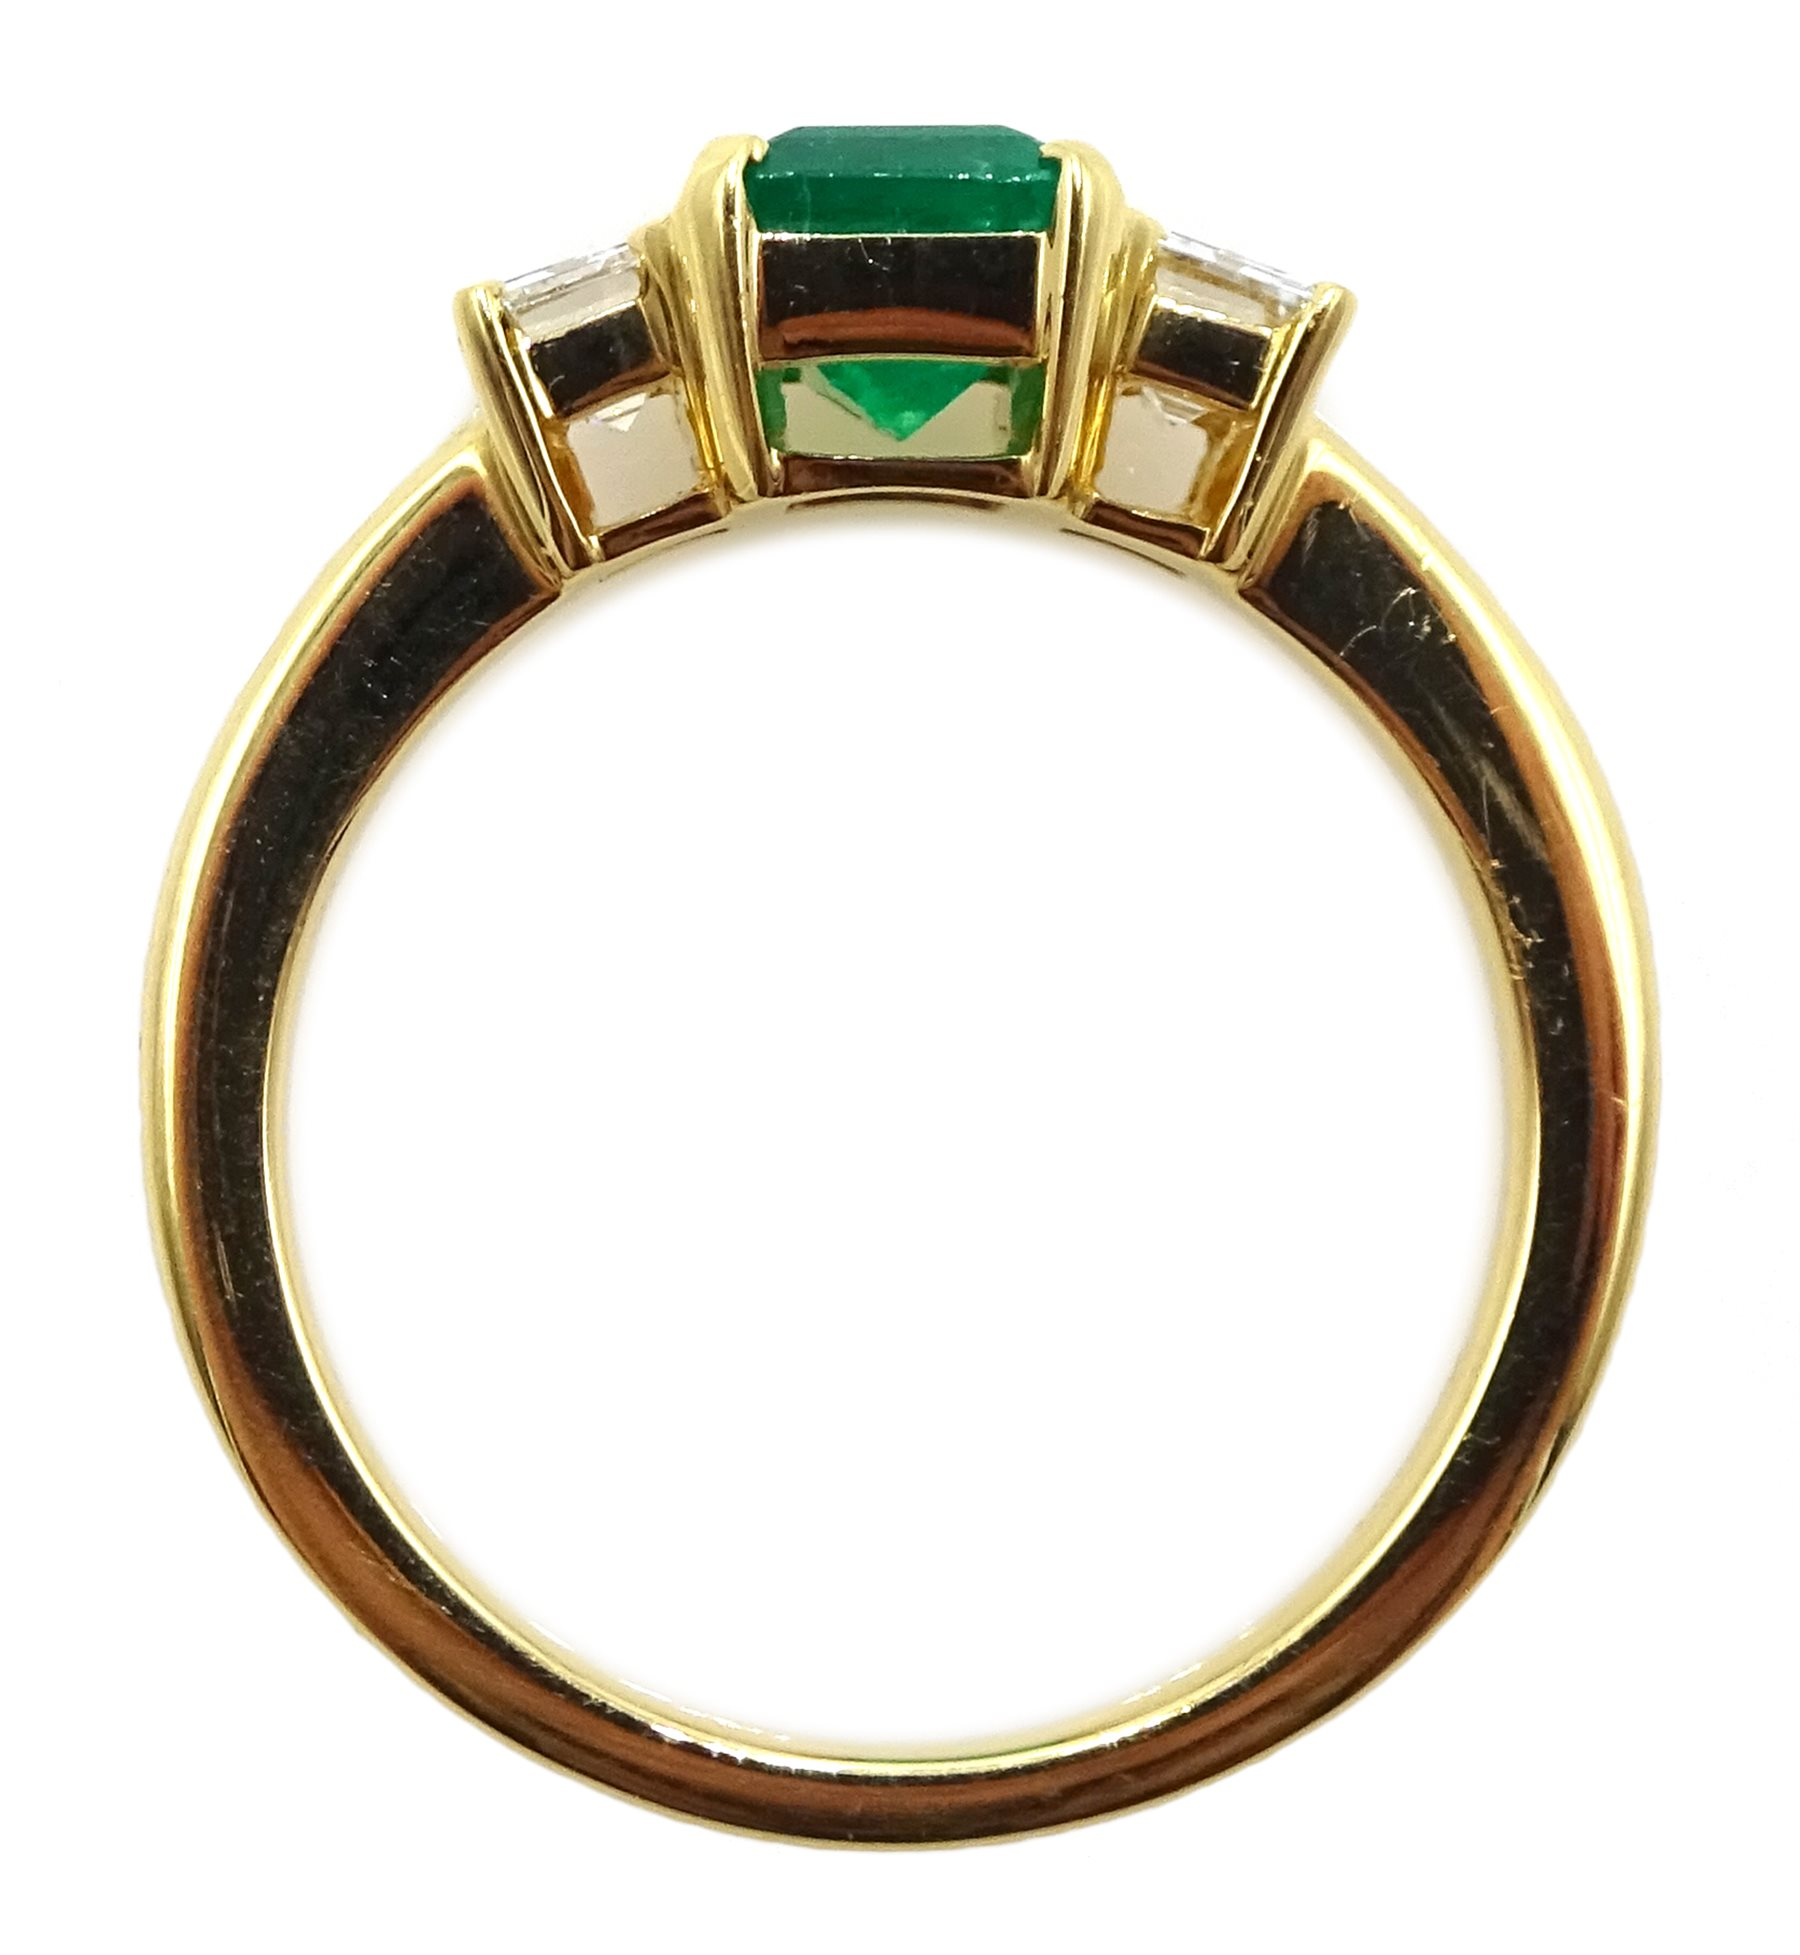 18ct gold emerald and baguette cut diamond ring - Image 4 of 4